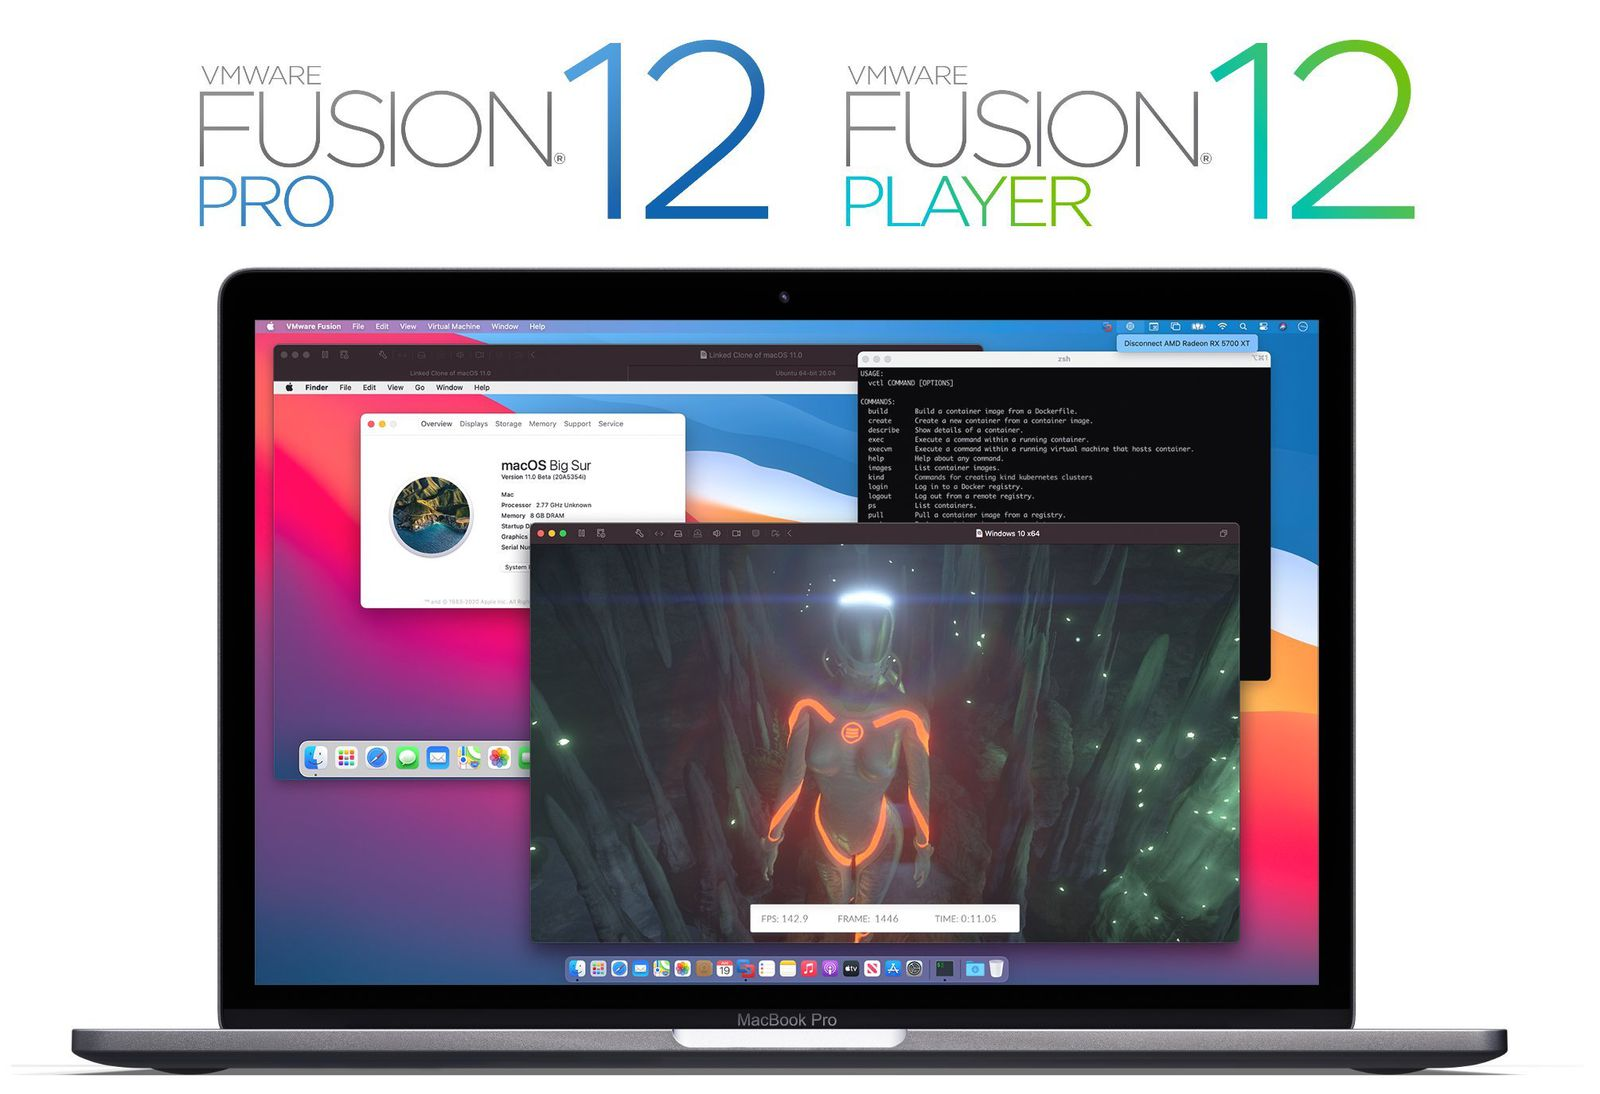 VMWare Fusion 12 for Mac is here